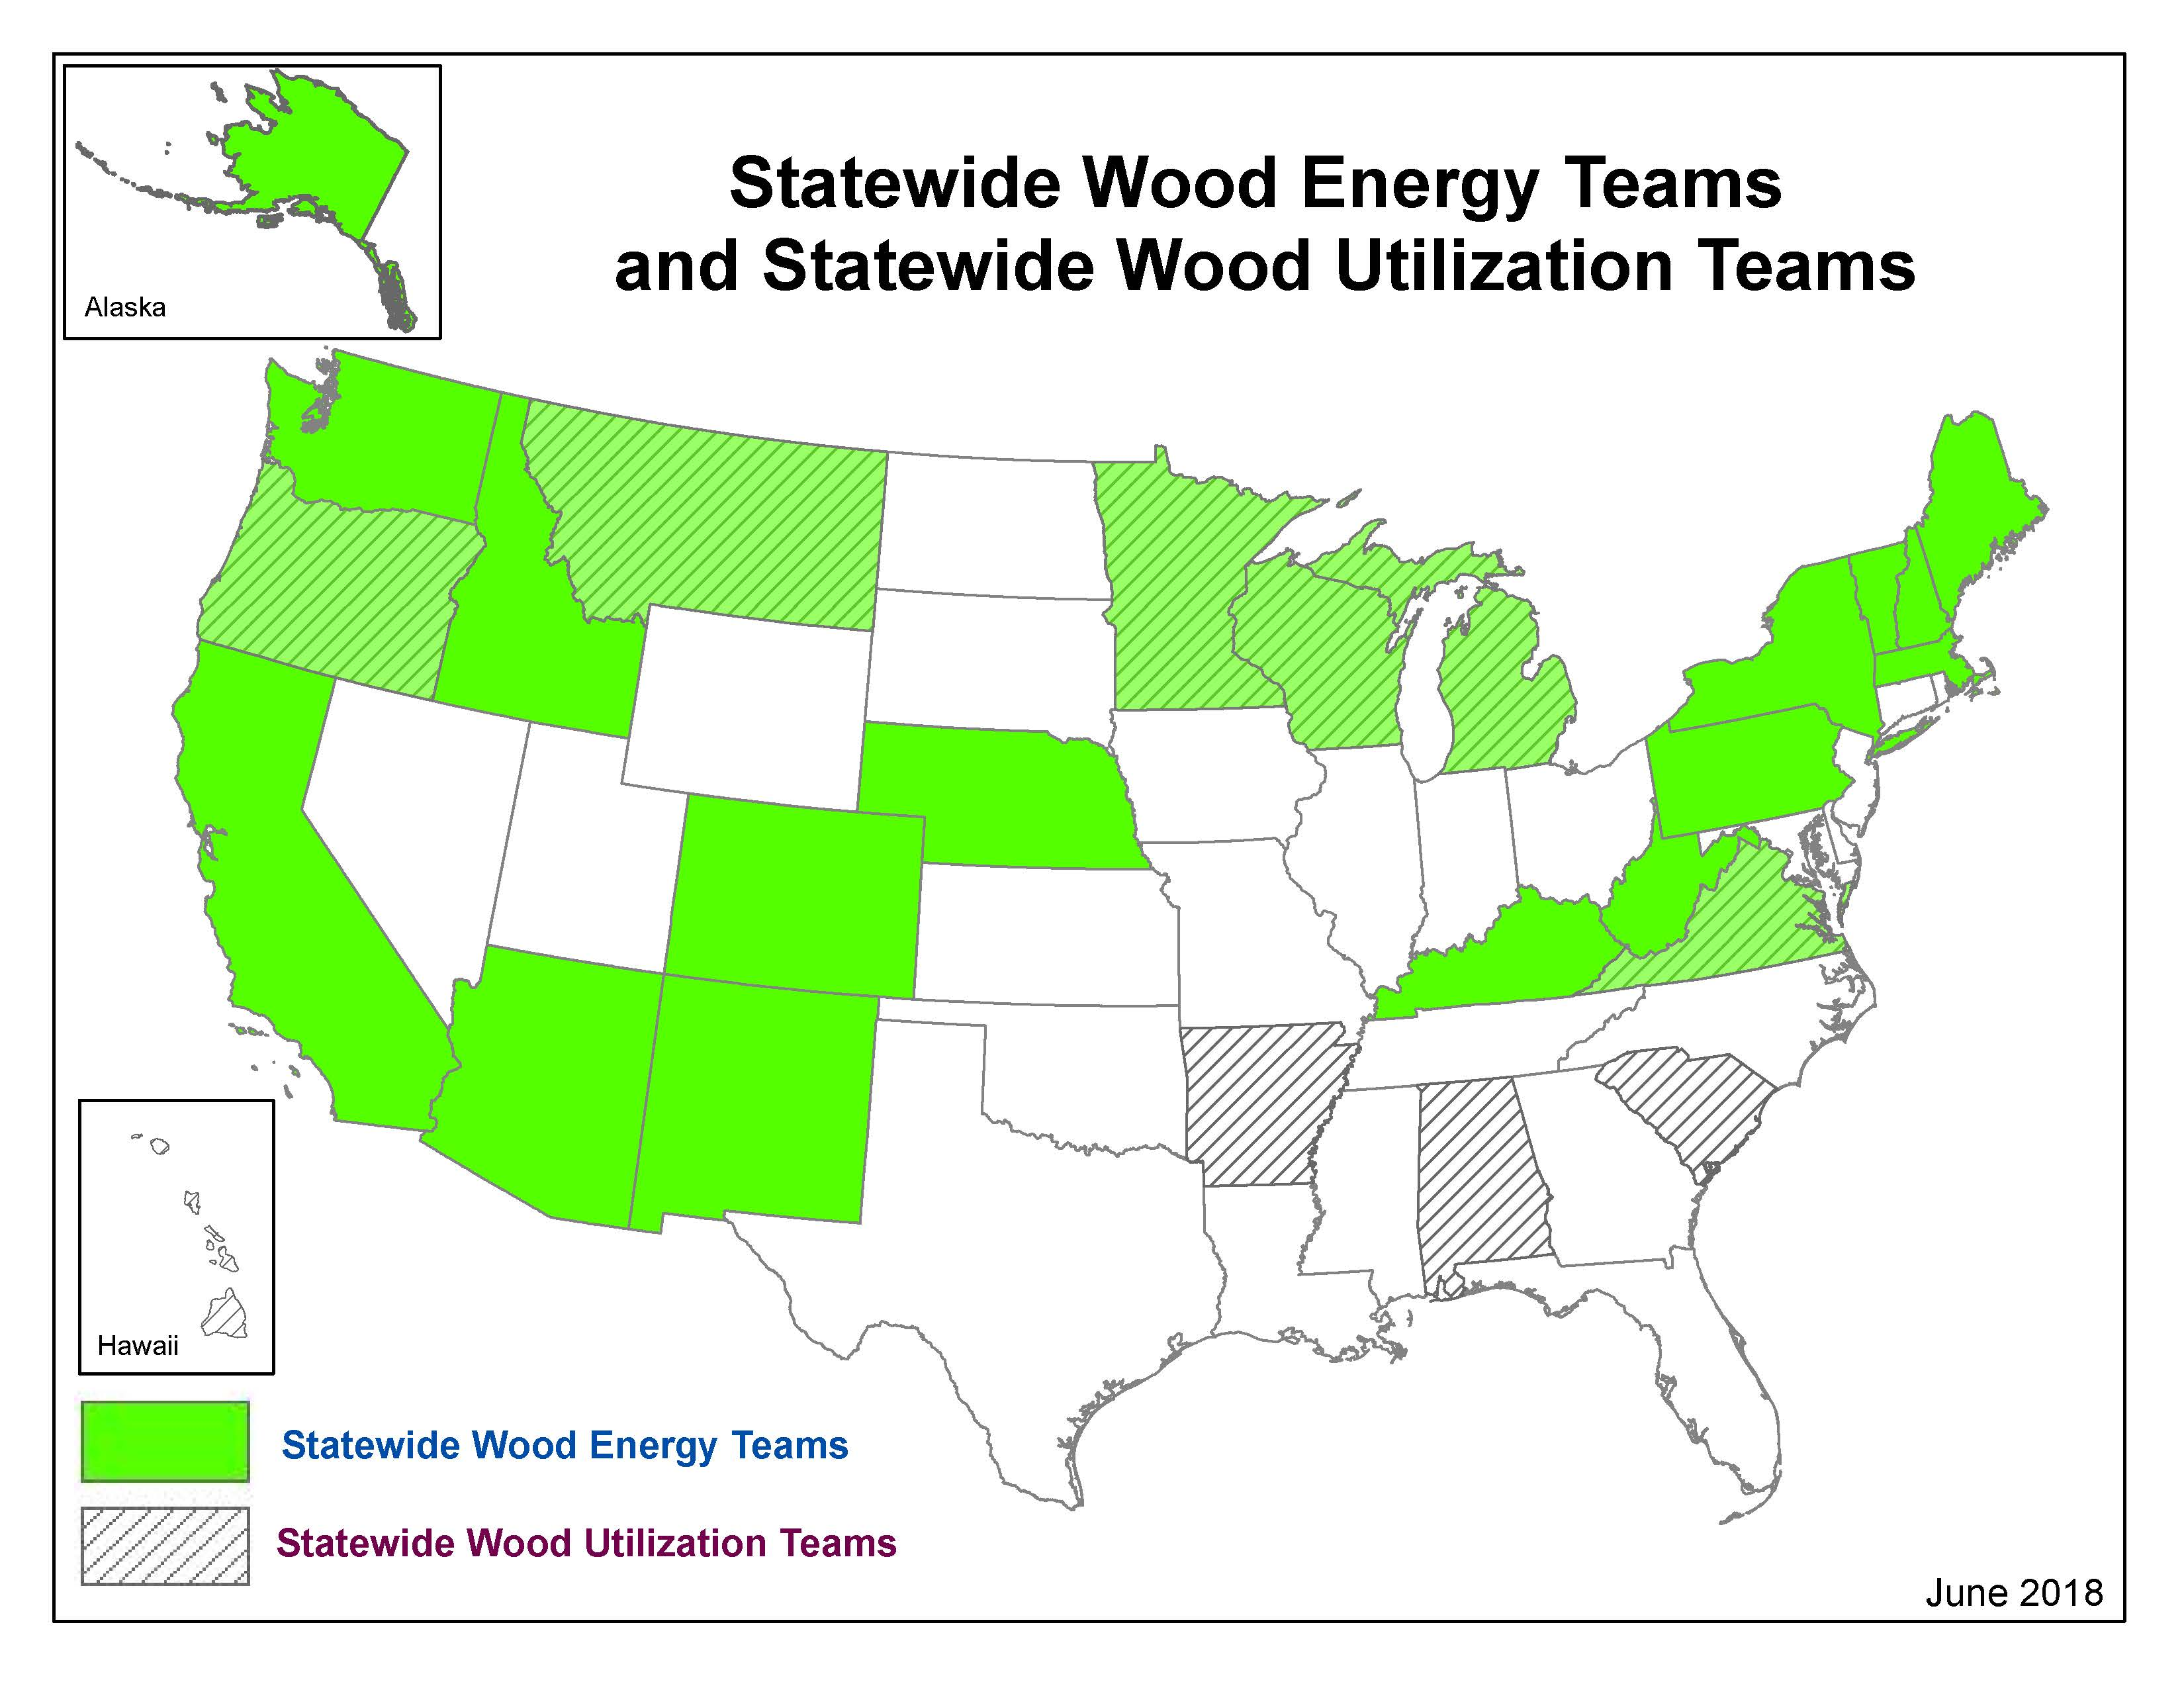 A graphic showing Statewide Wood Energy Teams and Statewide Wood Utilization Teams